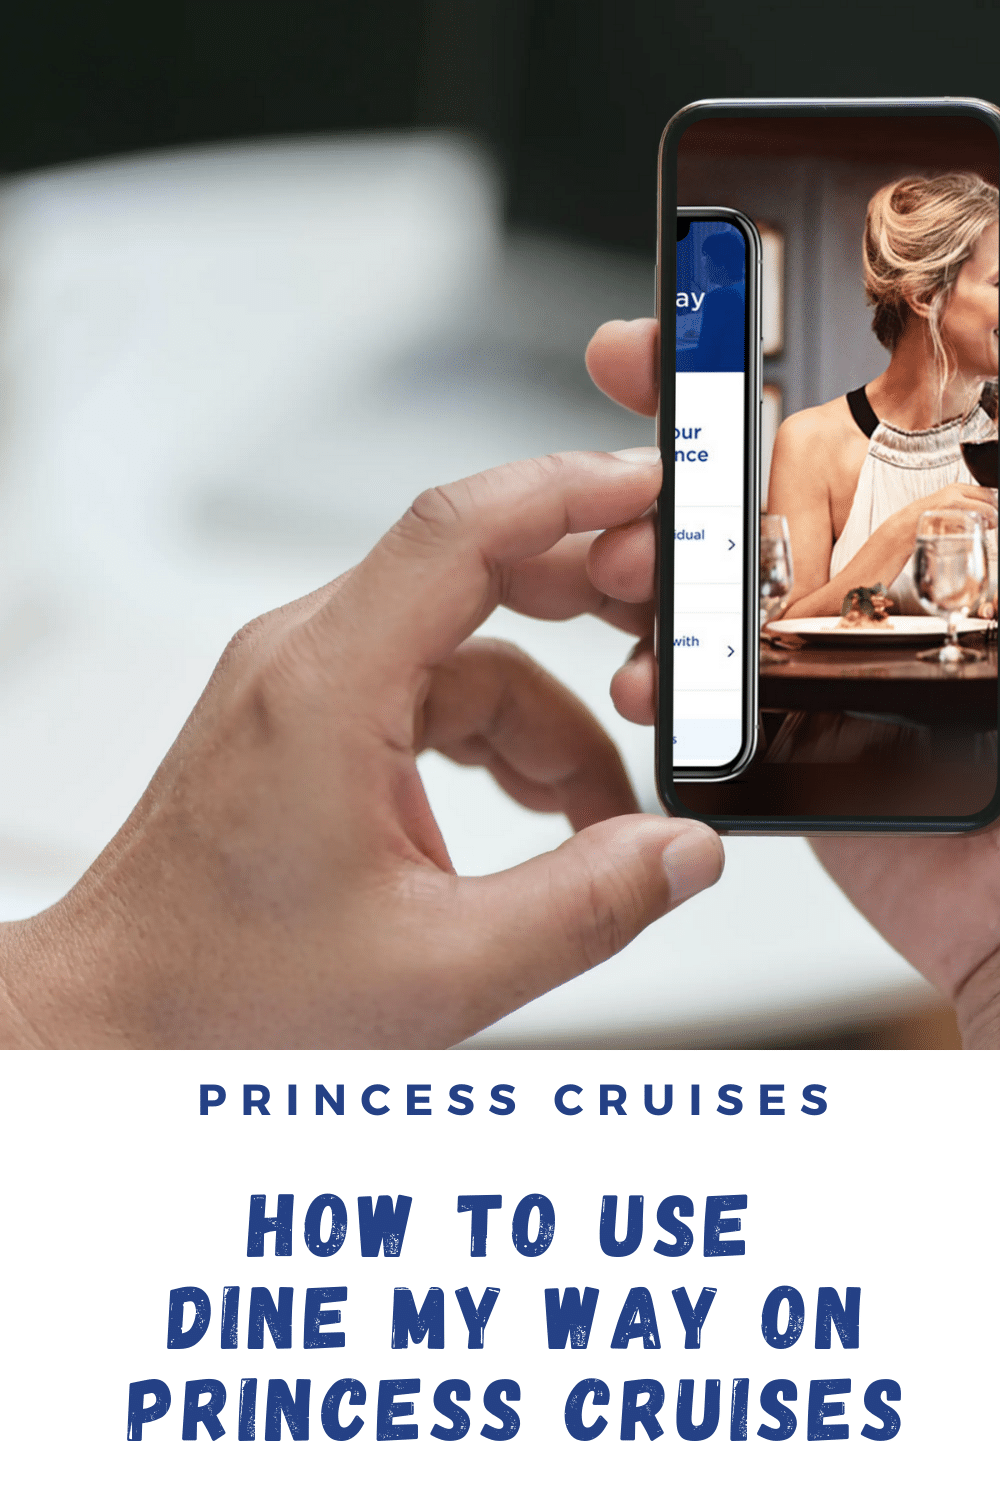 Princess Cruises' new Dine My Way enables passengers to make dining reservations in any restaurant. Find out how it works.